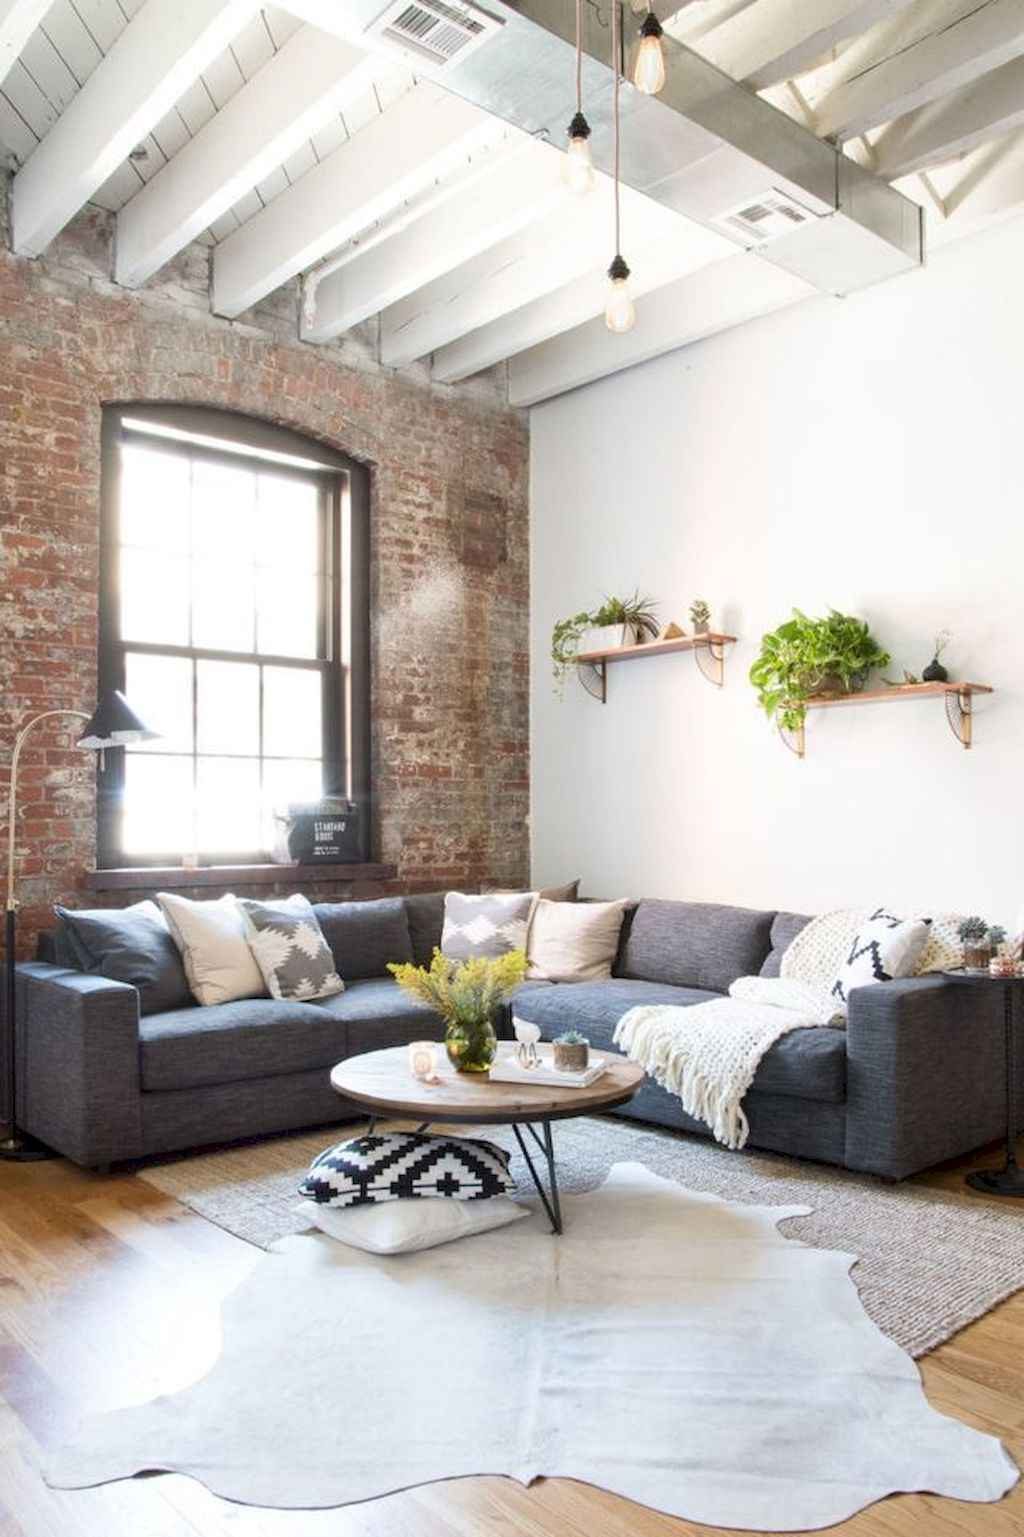 Amazing small first apartment decorating ideas (24)